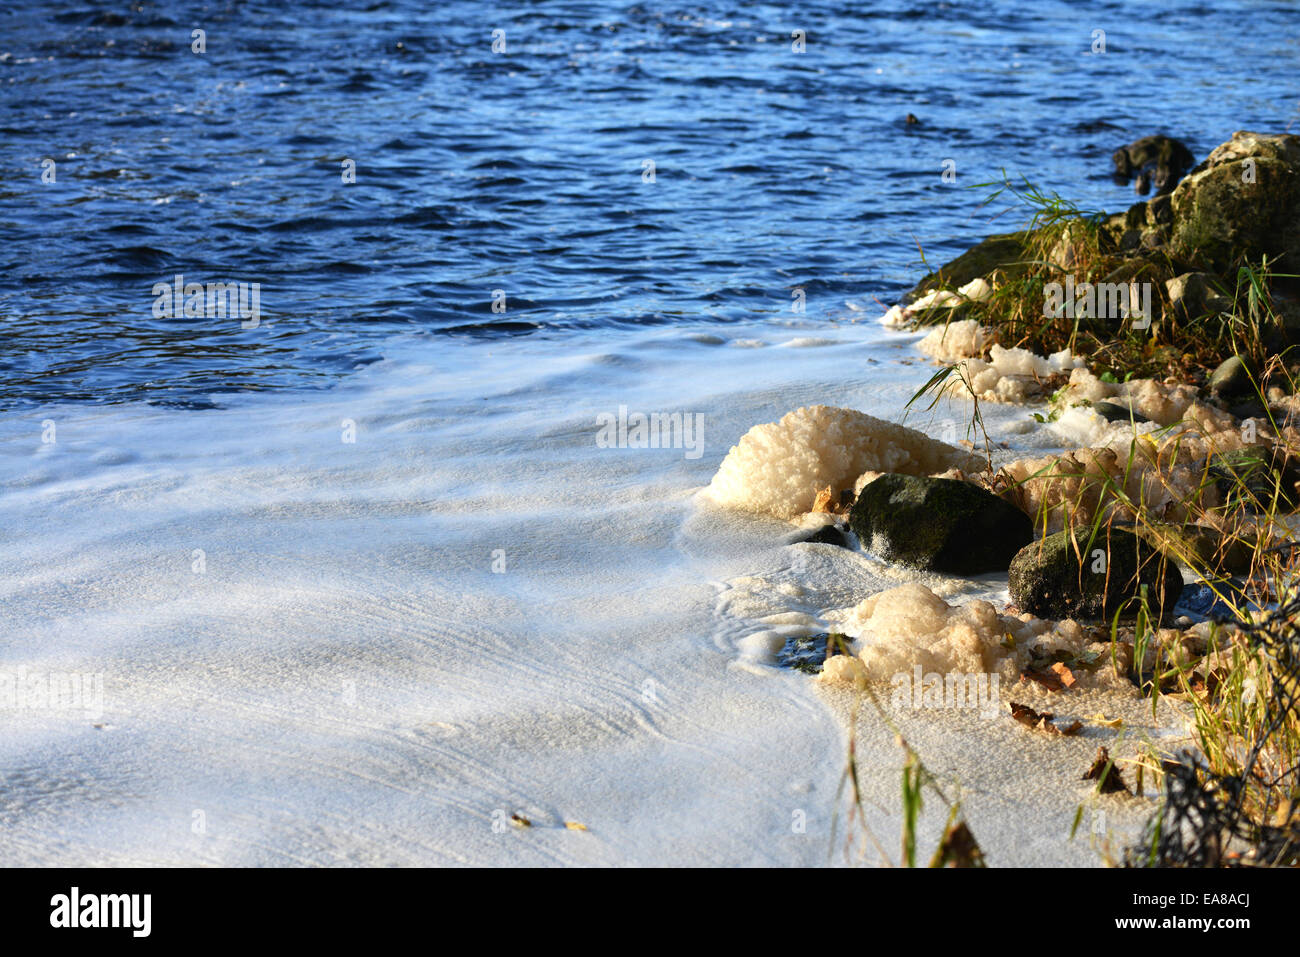 Foam on a river in Autumn. UK - Stock Image